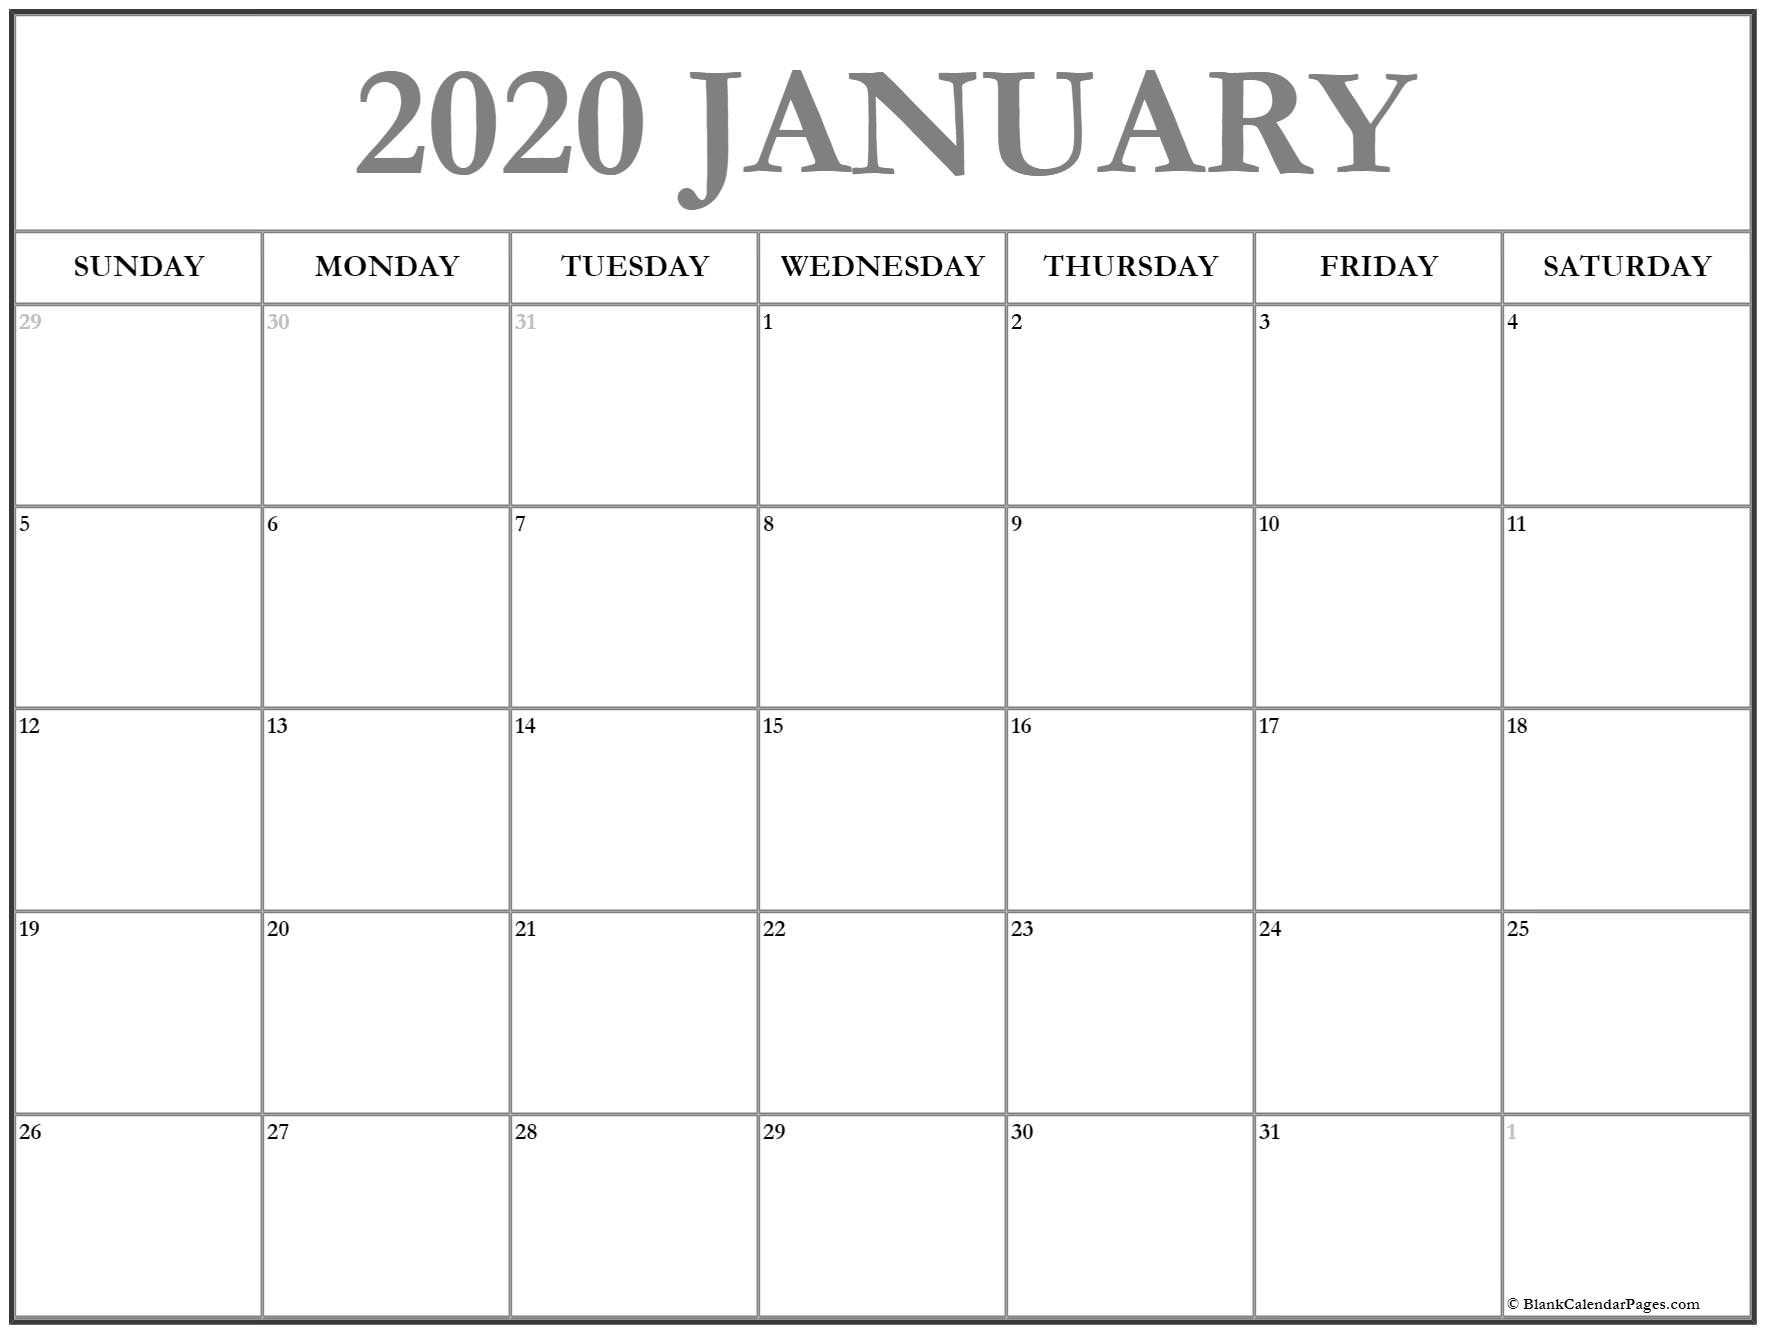 January 2020 Calendar | Free Printable Monthly Calendars-January 2020 Calendar Free Printable